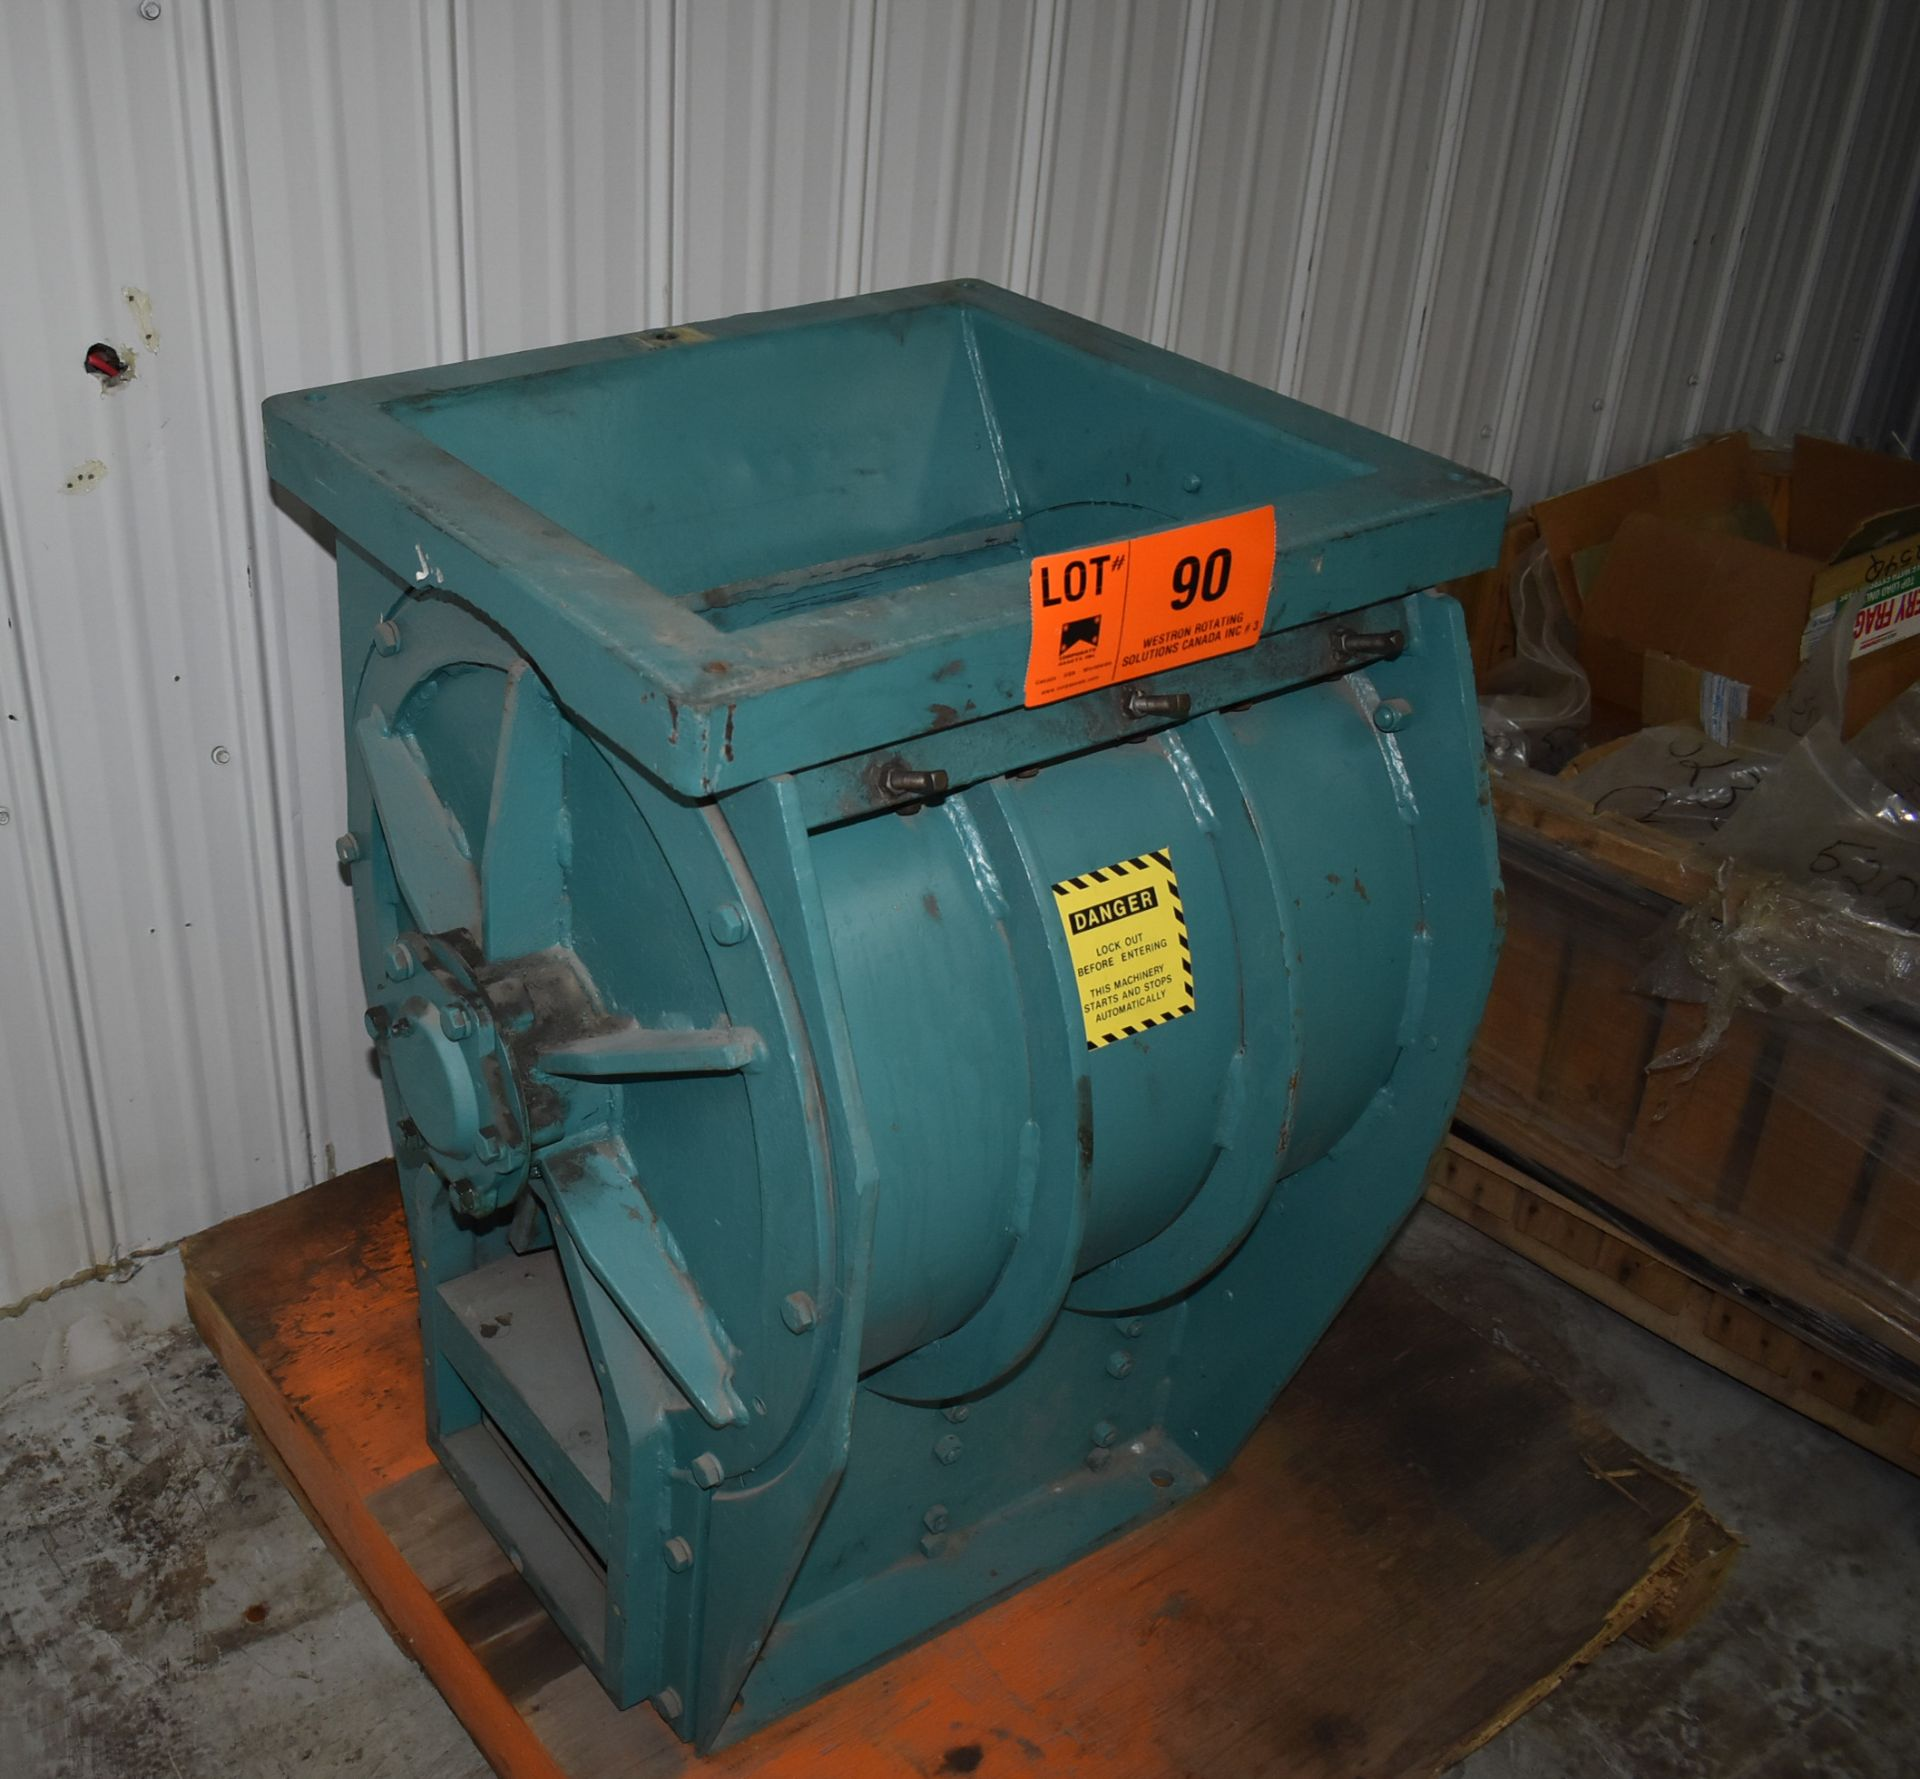 ACO FEEDER INDUSTRIAL WOOD CHIPPER, S/N: N/A [SKU 1357] (CI) [RIGGING FEE FOR LOT #90 - $25 CAD PLUS - Image 2 of 4